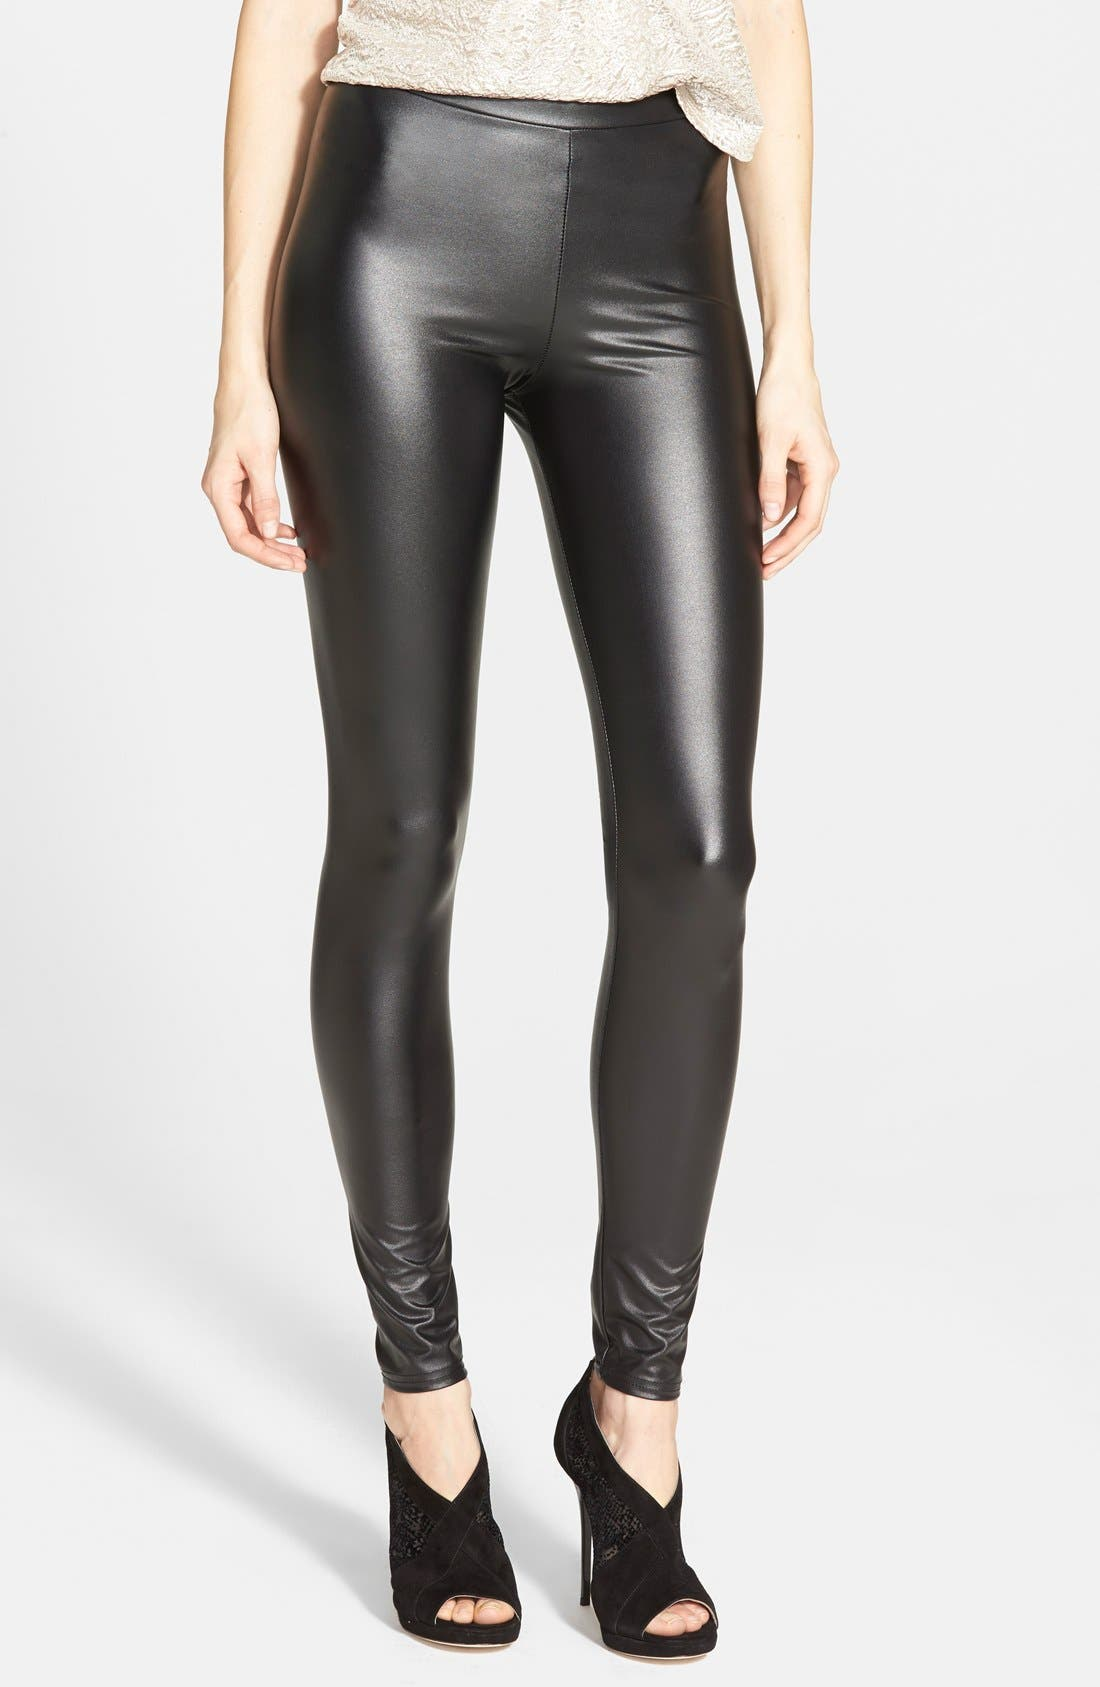 Wet look leggings topshop